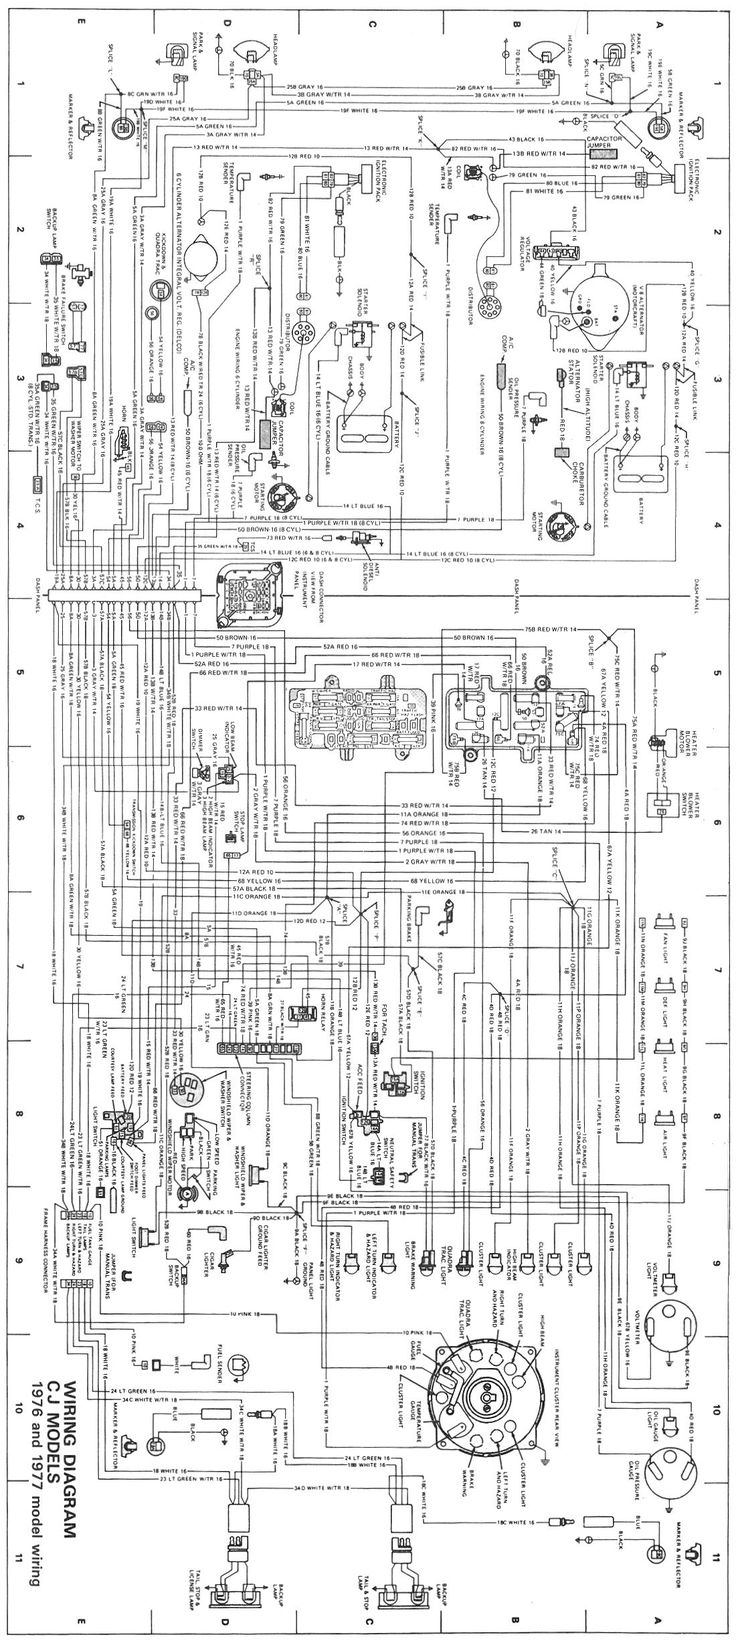 1964 Willys Jeep Wiring Diagram 31 Images 1963 8d25ded6e3673519e155875e09844e5e Cj Stuff 333 Best Jeeps On Pinterest